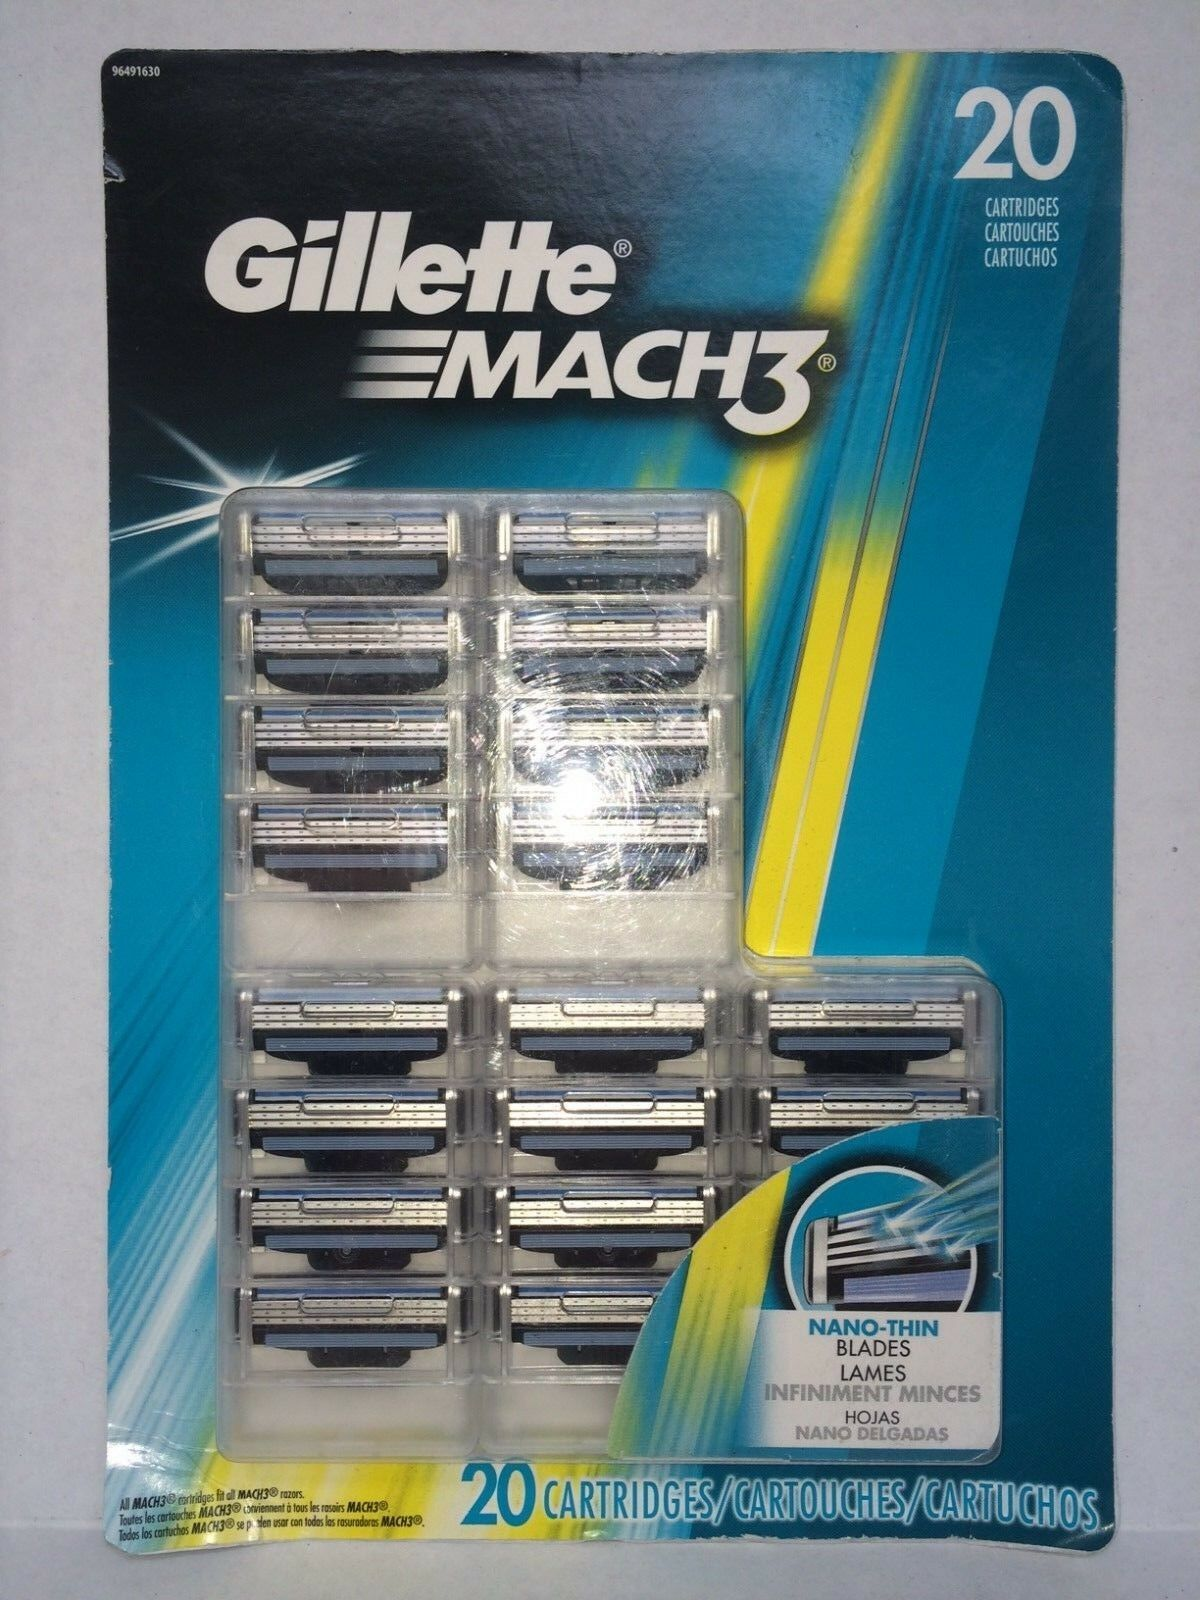 Gillette Mach3 Blades Refill Pack - 20 Cartridges